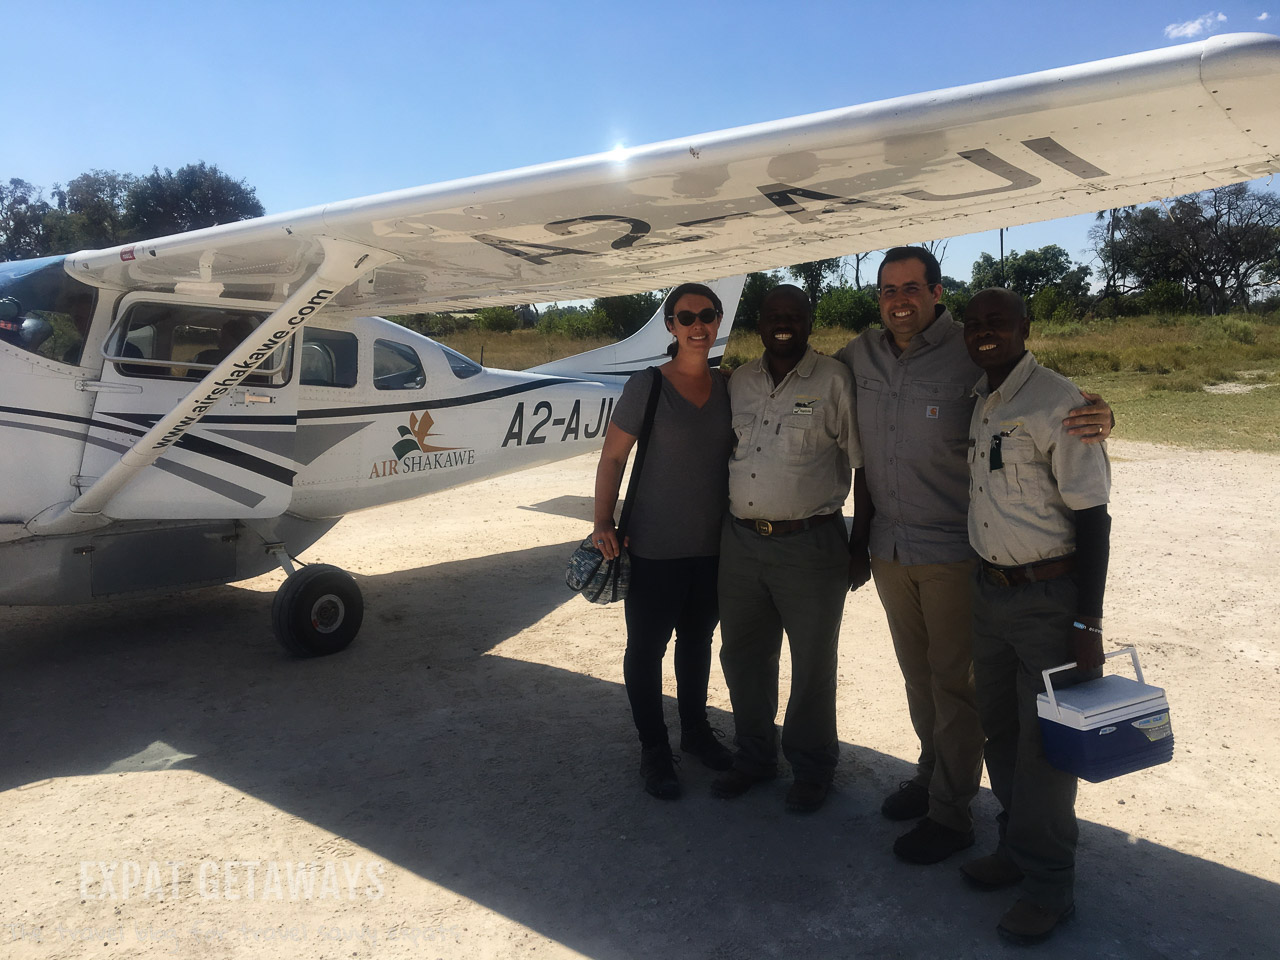 What a welcome to Gunn's Camp, Botswana! The only way in is by light aircraft and that means you kick off your stay with a scenic flight over the Okavango Delta. Expat Getaways 2 Weeks in Southern Africa.